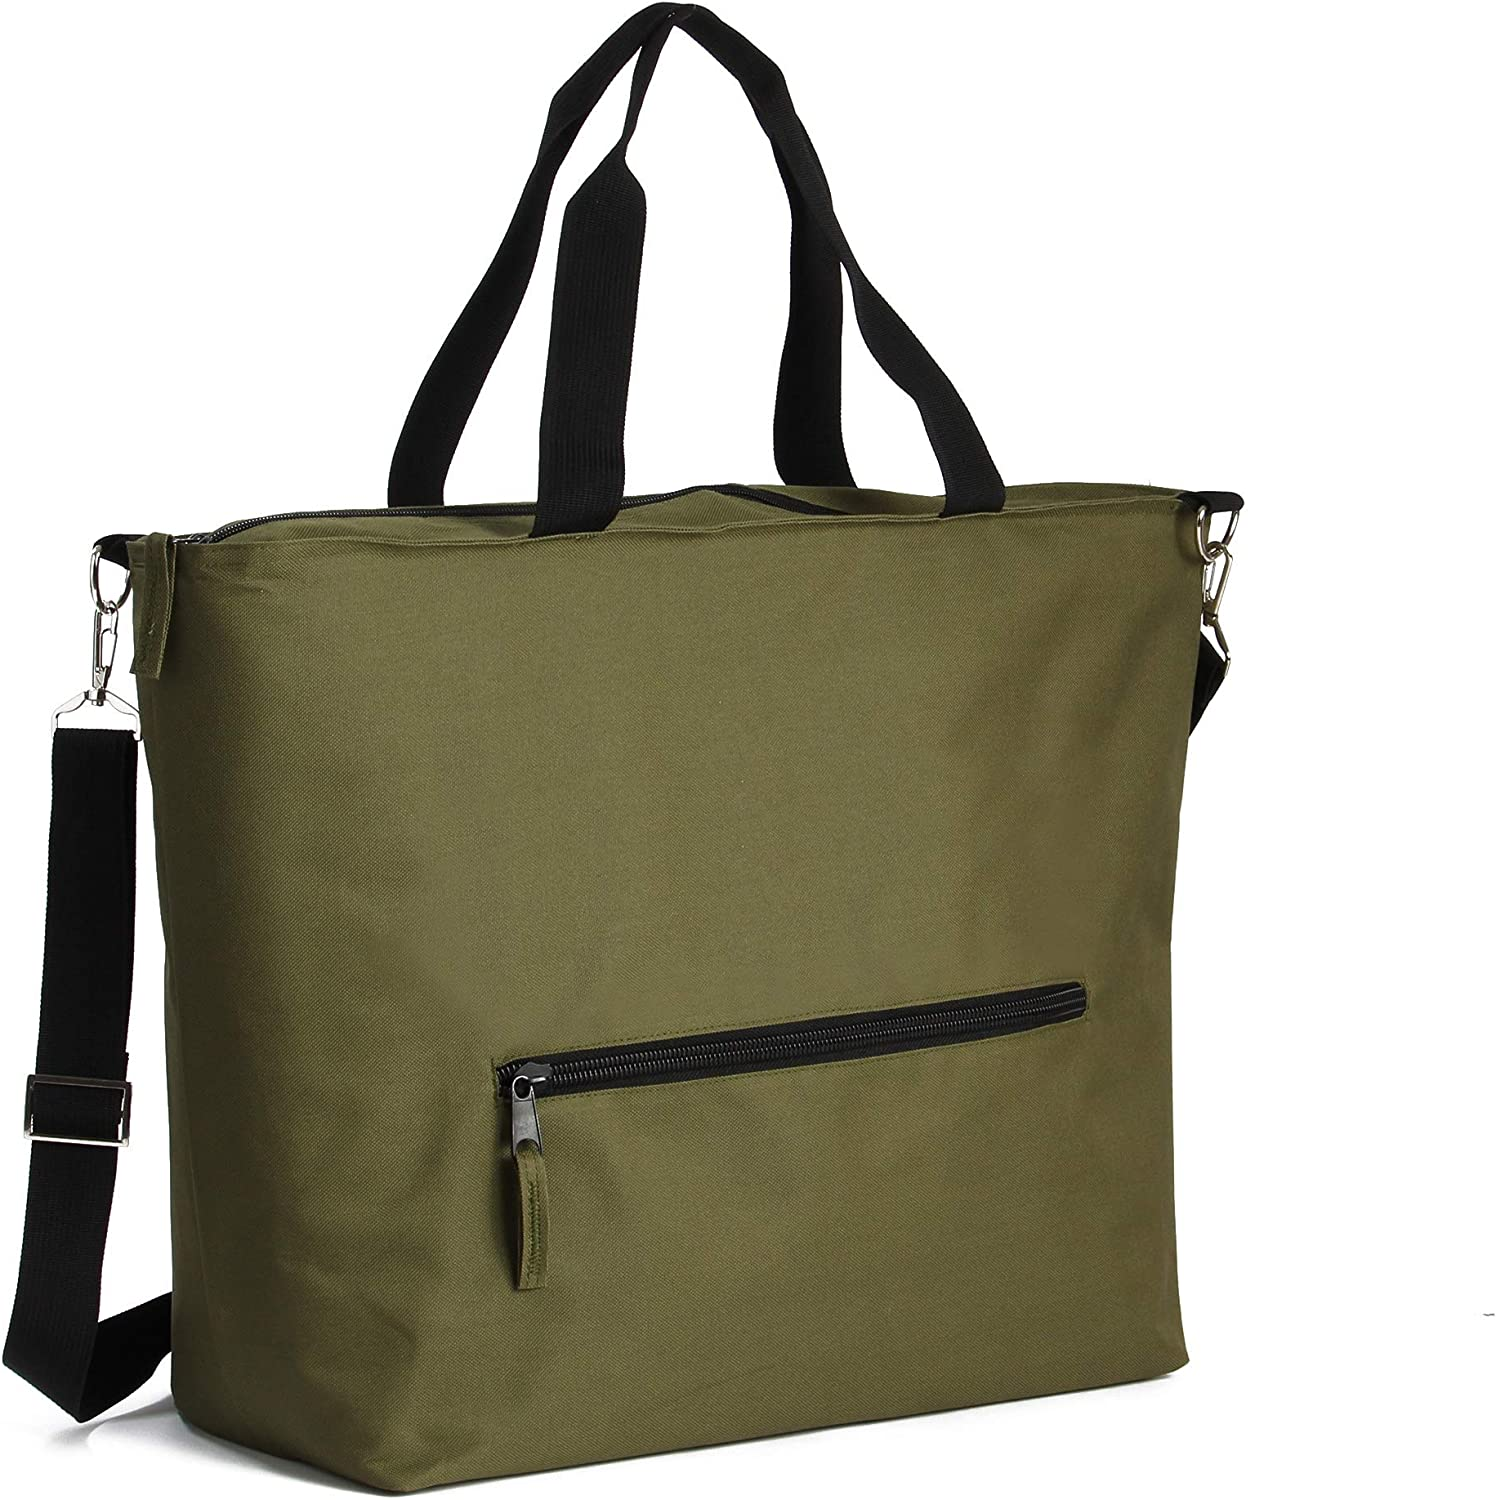 Earthwise Jumbo Insulated Grocery Bag Extra Large with Zipper Closure for Groceries, Picnics Keeps Food Hot or Cold Removable Shoulder Strap 24 inches x 15